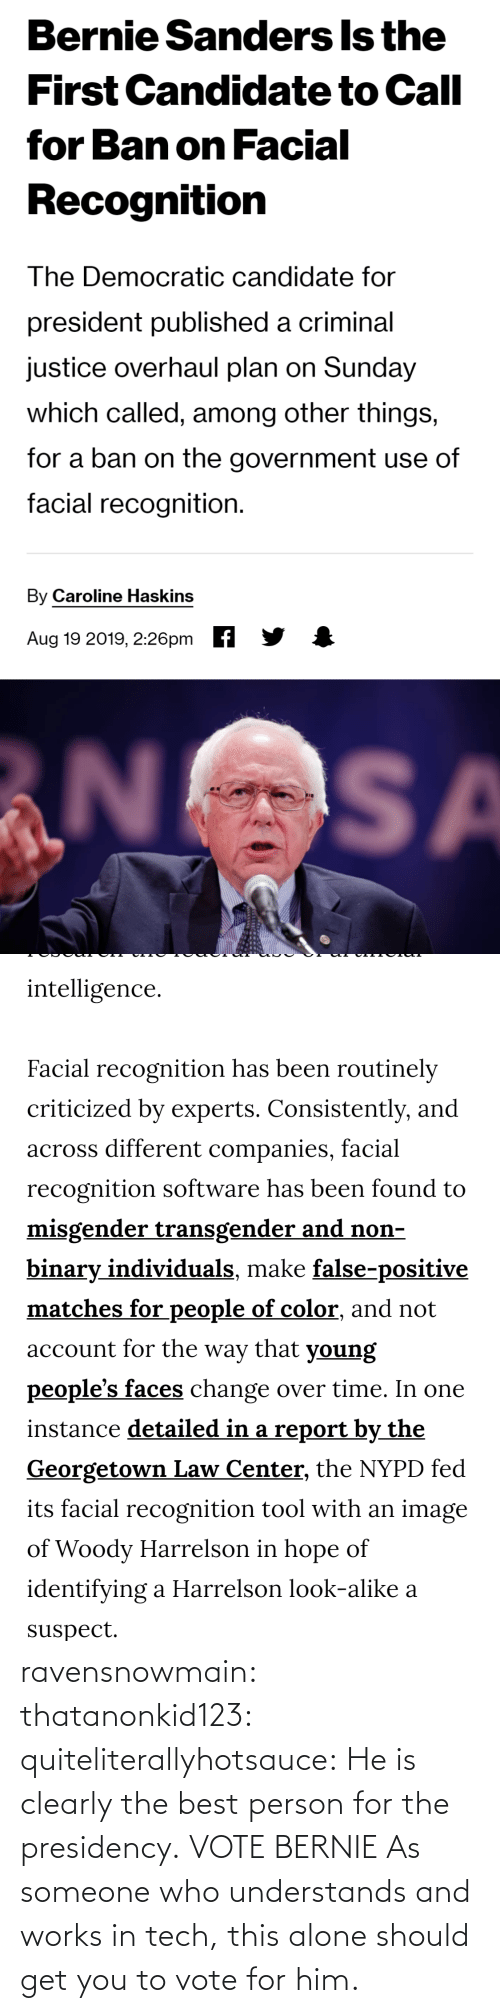 person: ravensnowmain: thatanonkid123:  quiteliterallyhotsauce:   He is clearly the best person for the presidency.     VOTE BERNIE  As someone who understands and works in tech, this alone should get you to vote for him.